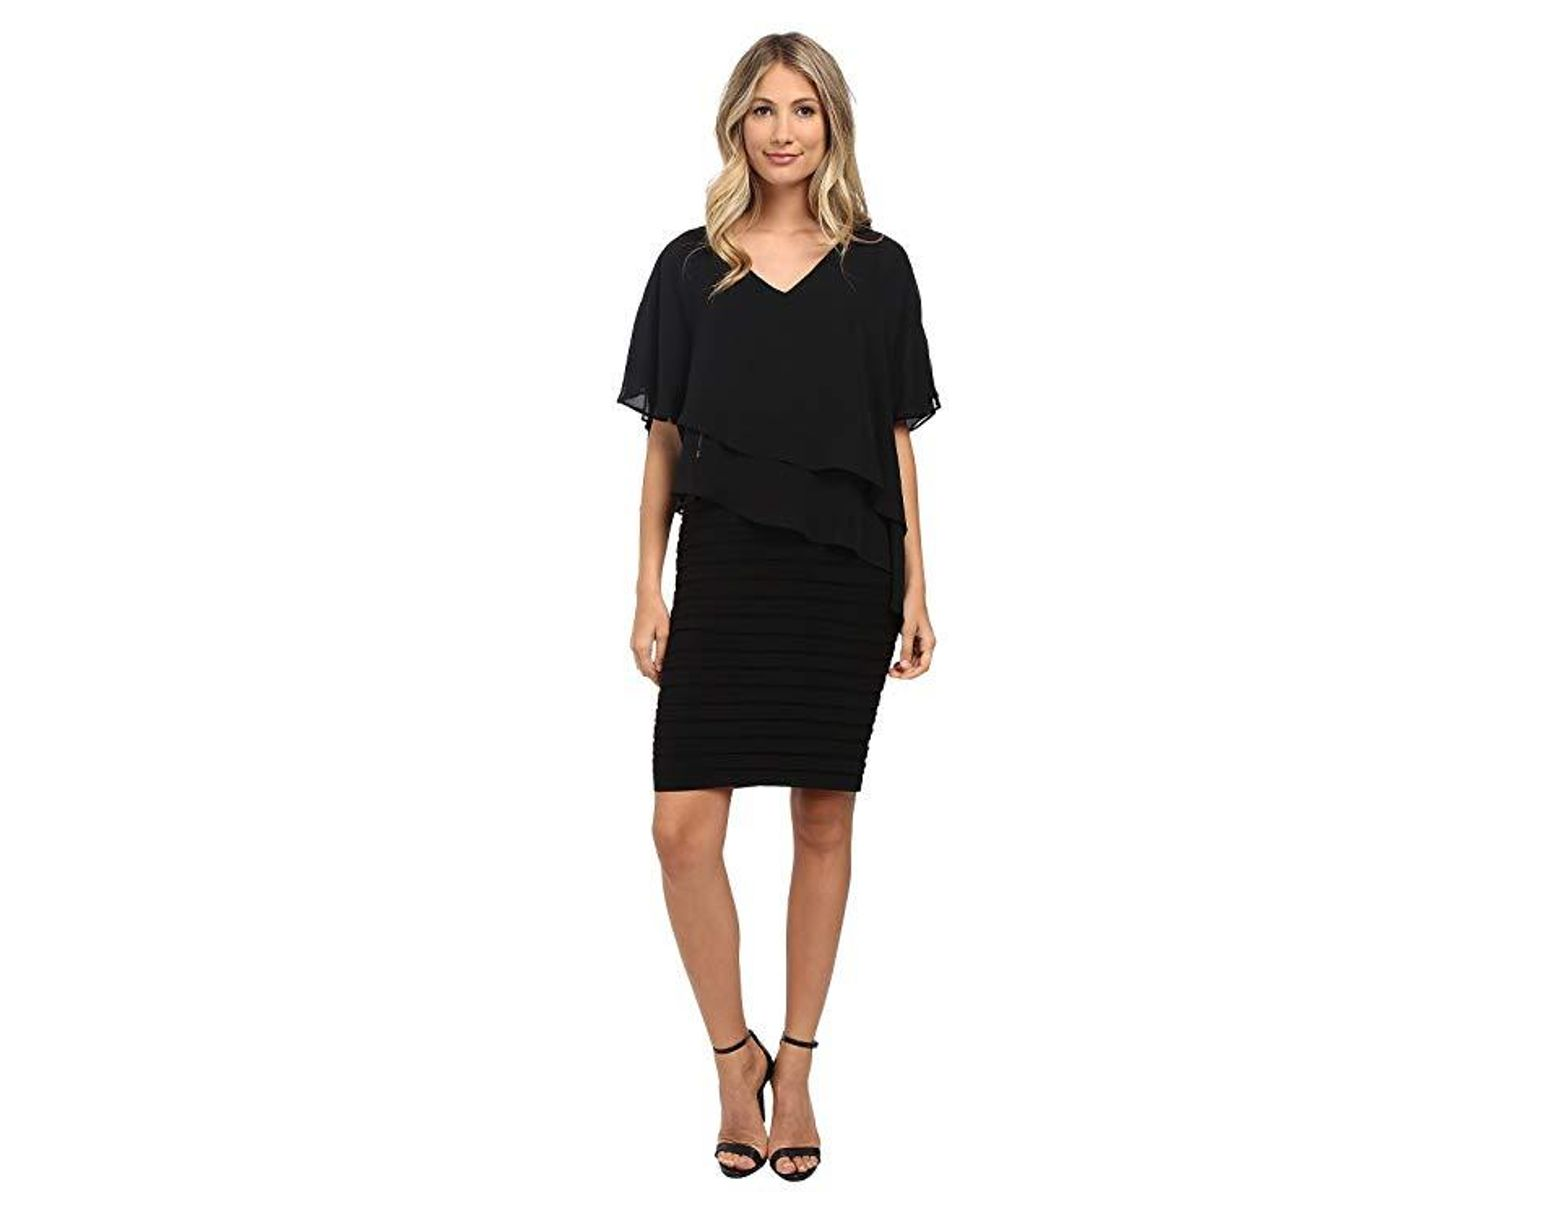 6da486d52a9e0 Adrianna Papell Layered Chiffon Capelet Banded Dress (black) Dress in Black  - Save 39% - Lyst